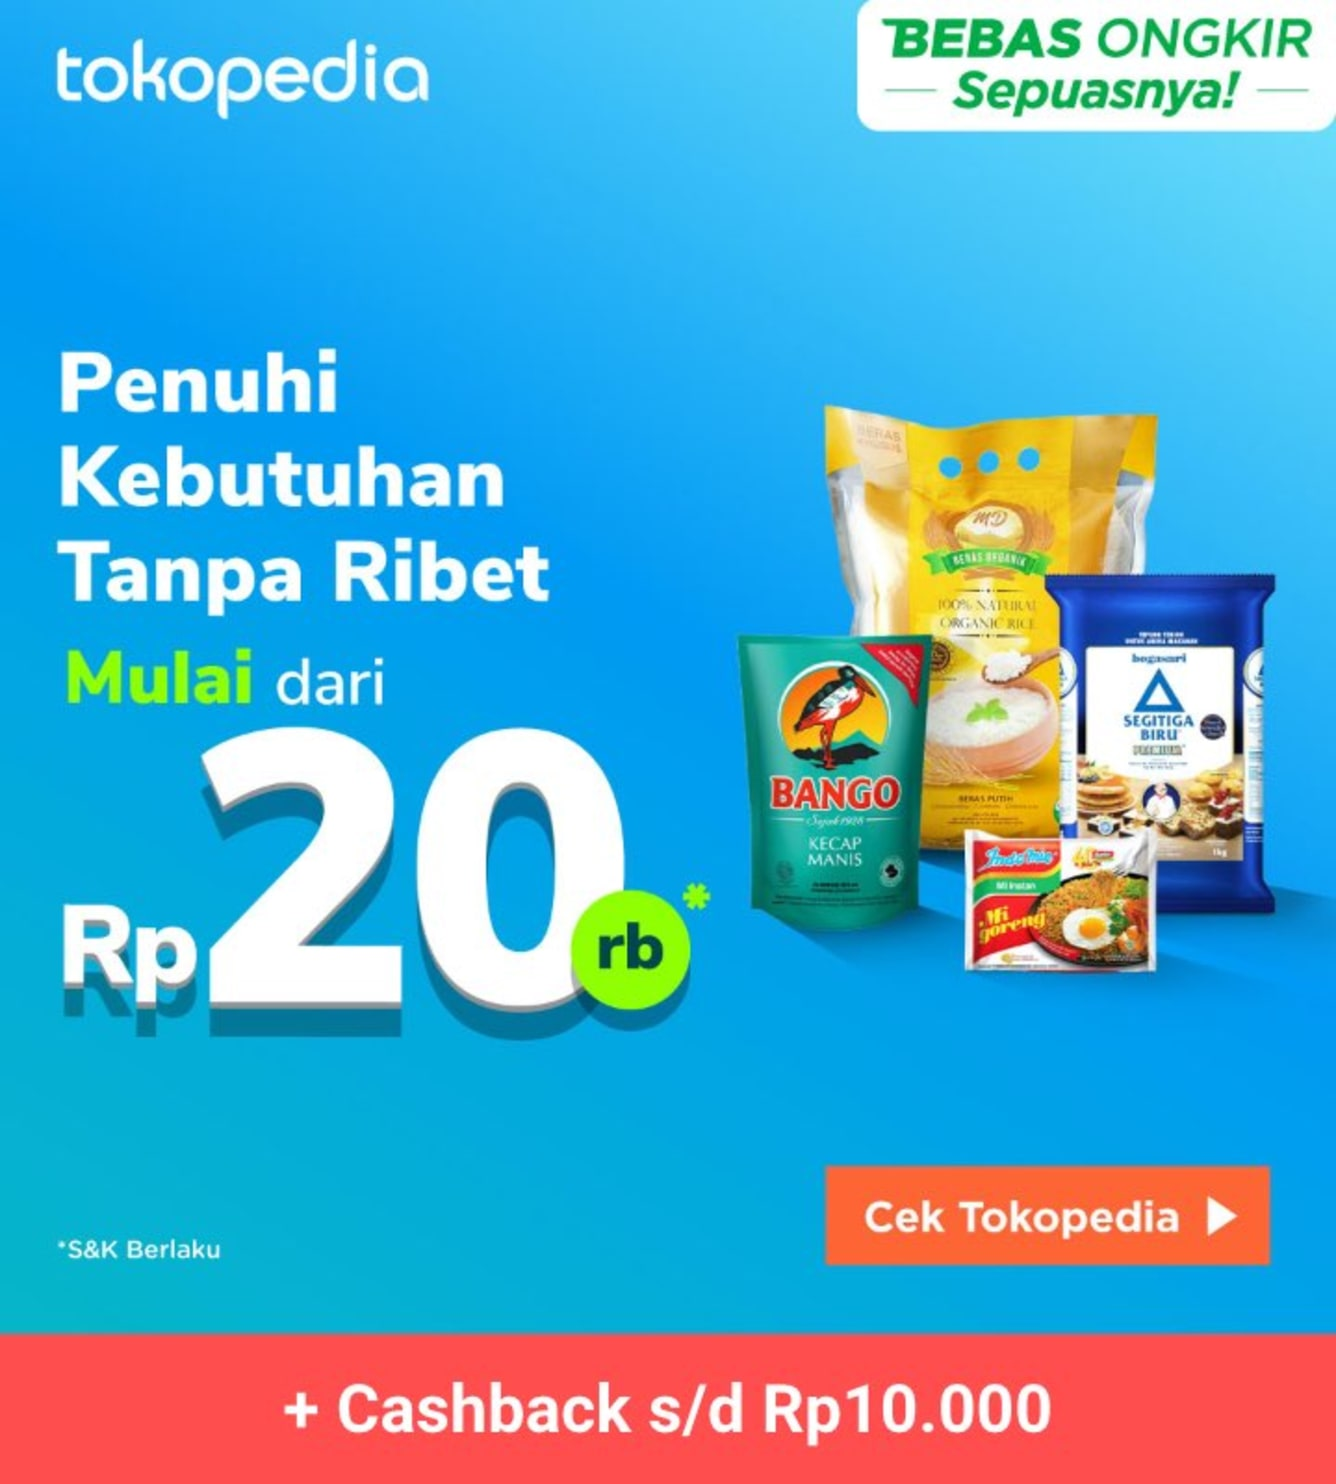 Week 15 - Promo Tokopedia